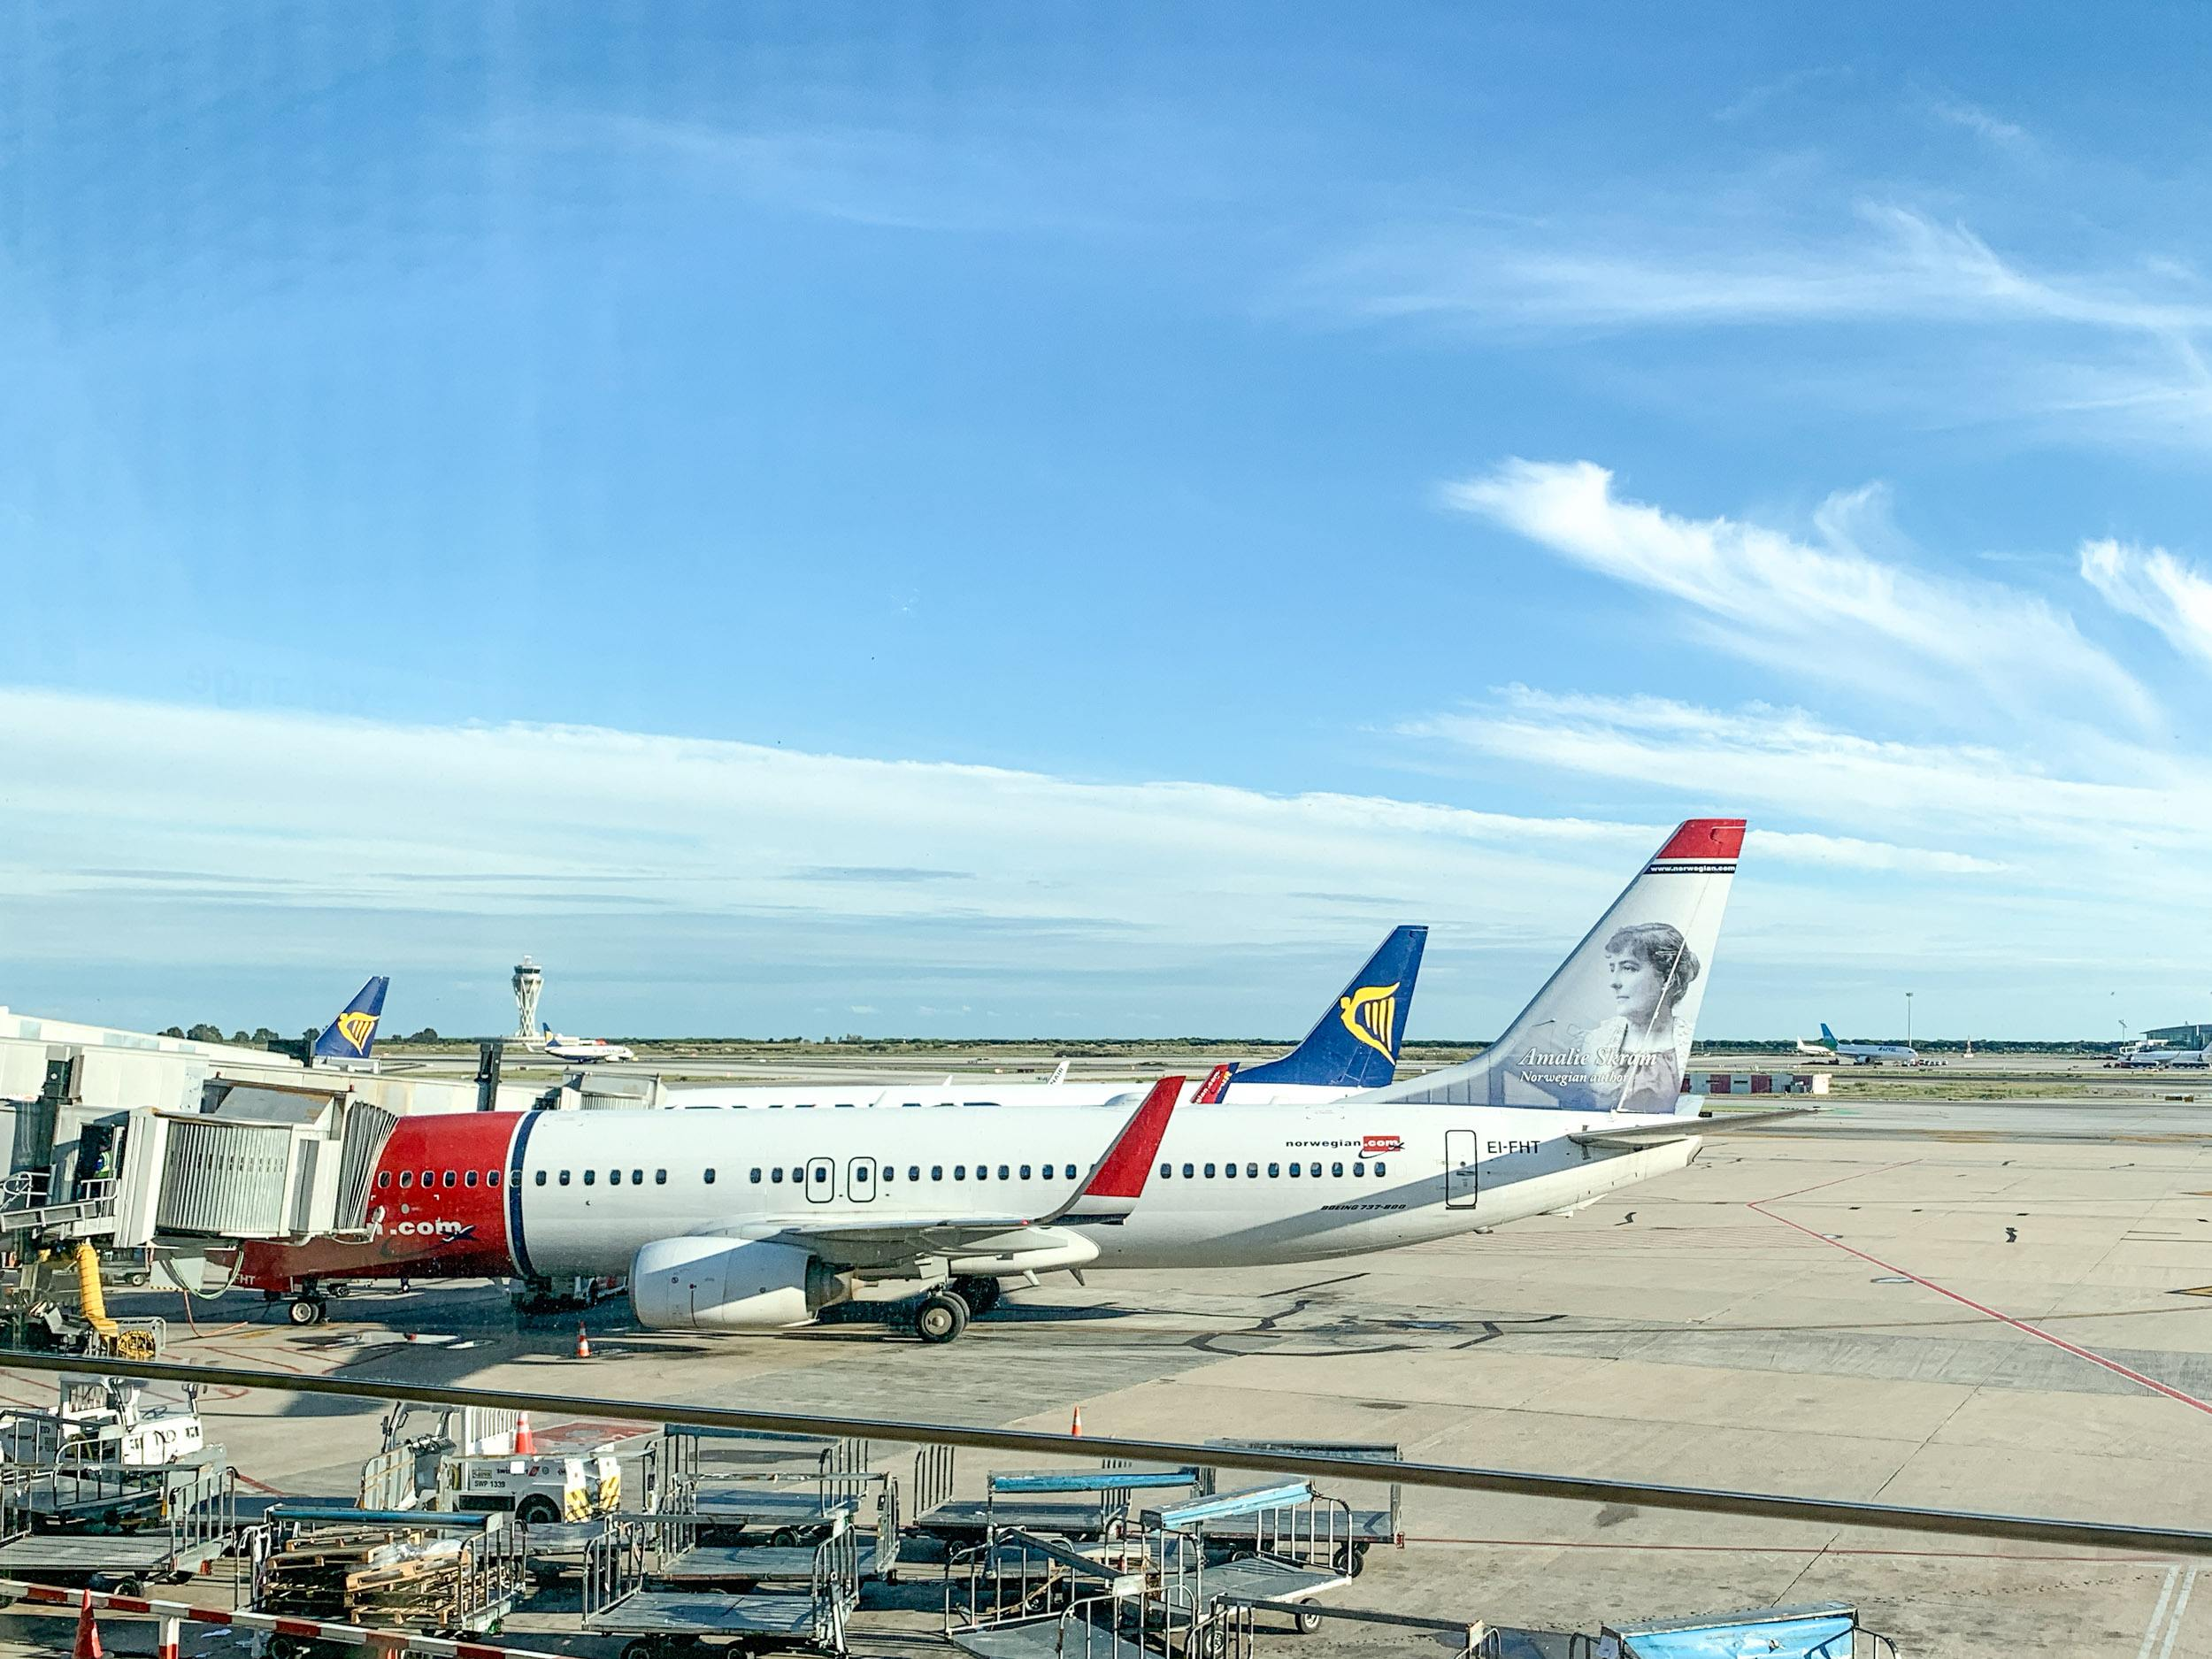 Red and white Norwegian Air 737 at Barcelona airport